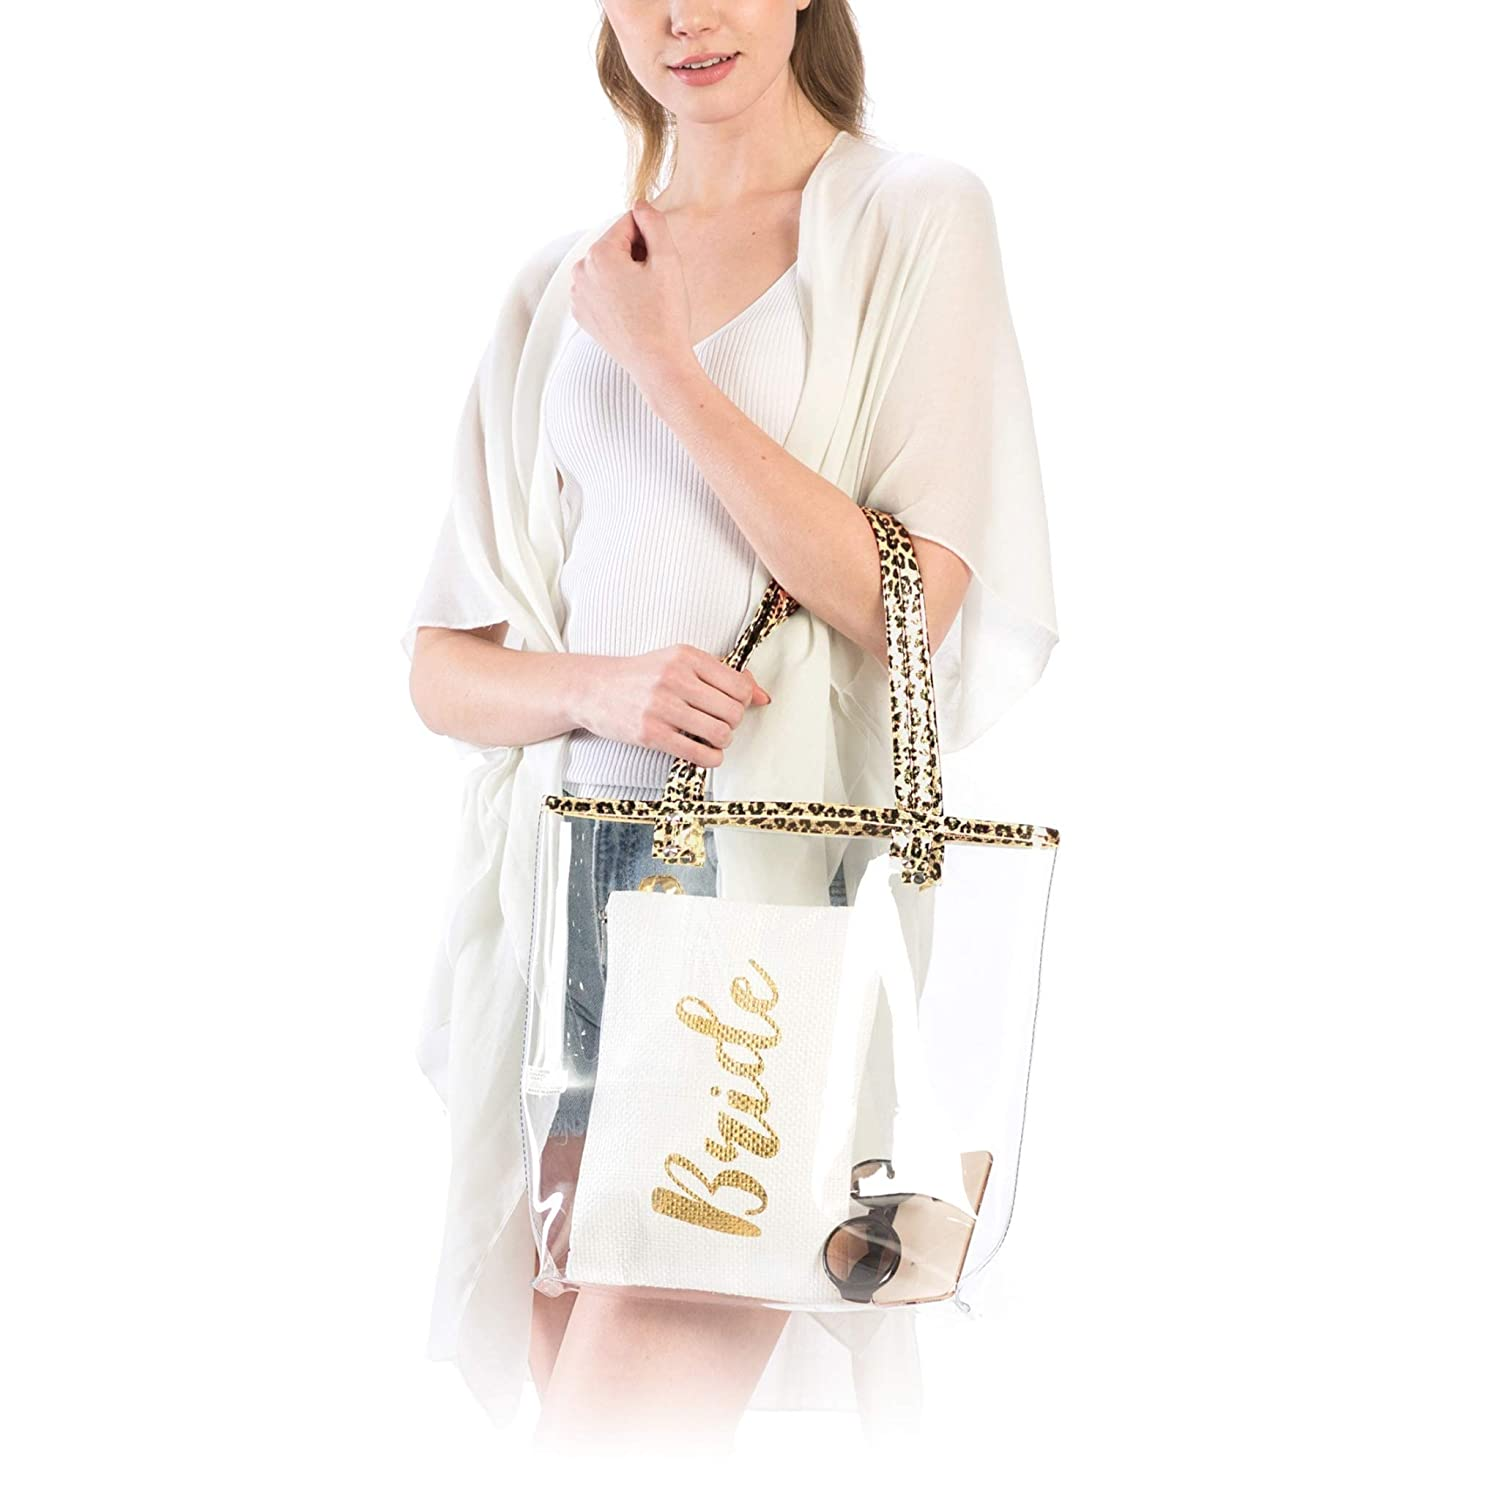 2e30b4fbd98f Me Plus Women Fashion Transparent Clear Hologram PVC Tote Bag Purse with  Leopard Print Trim